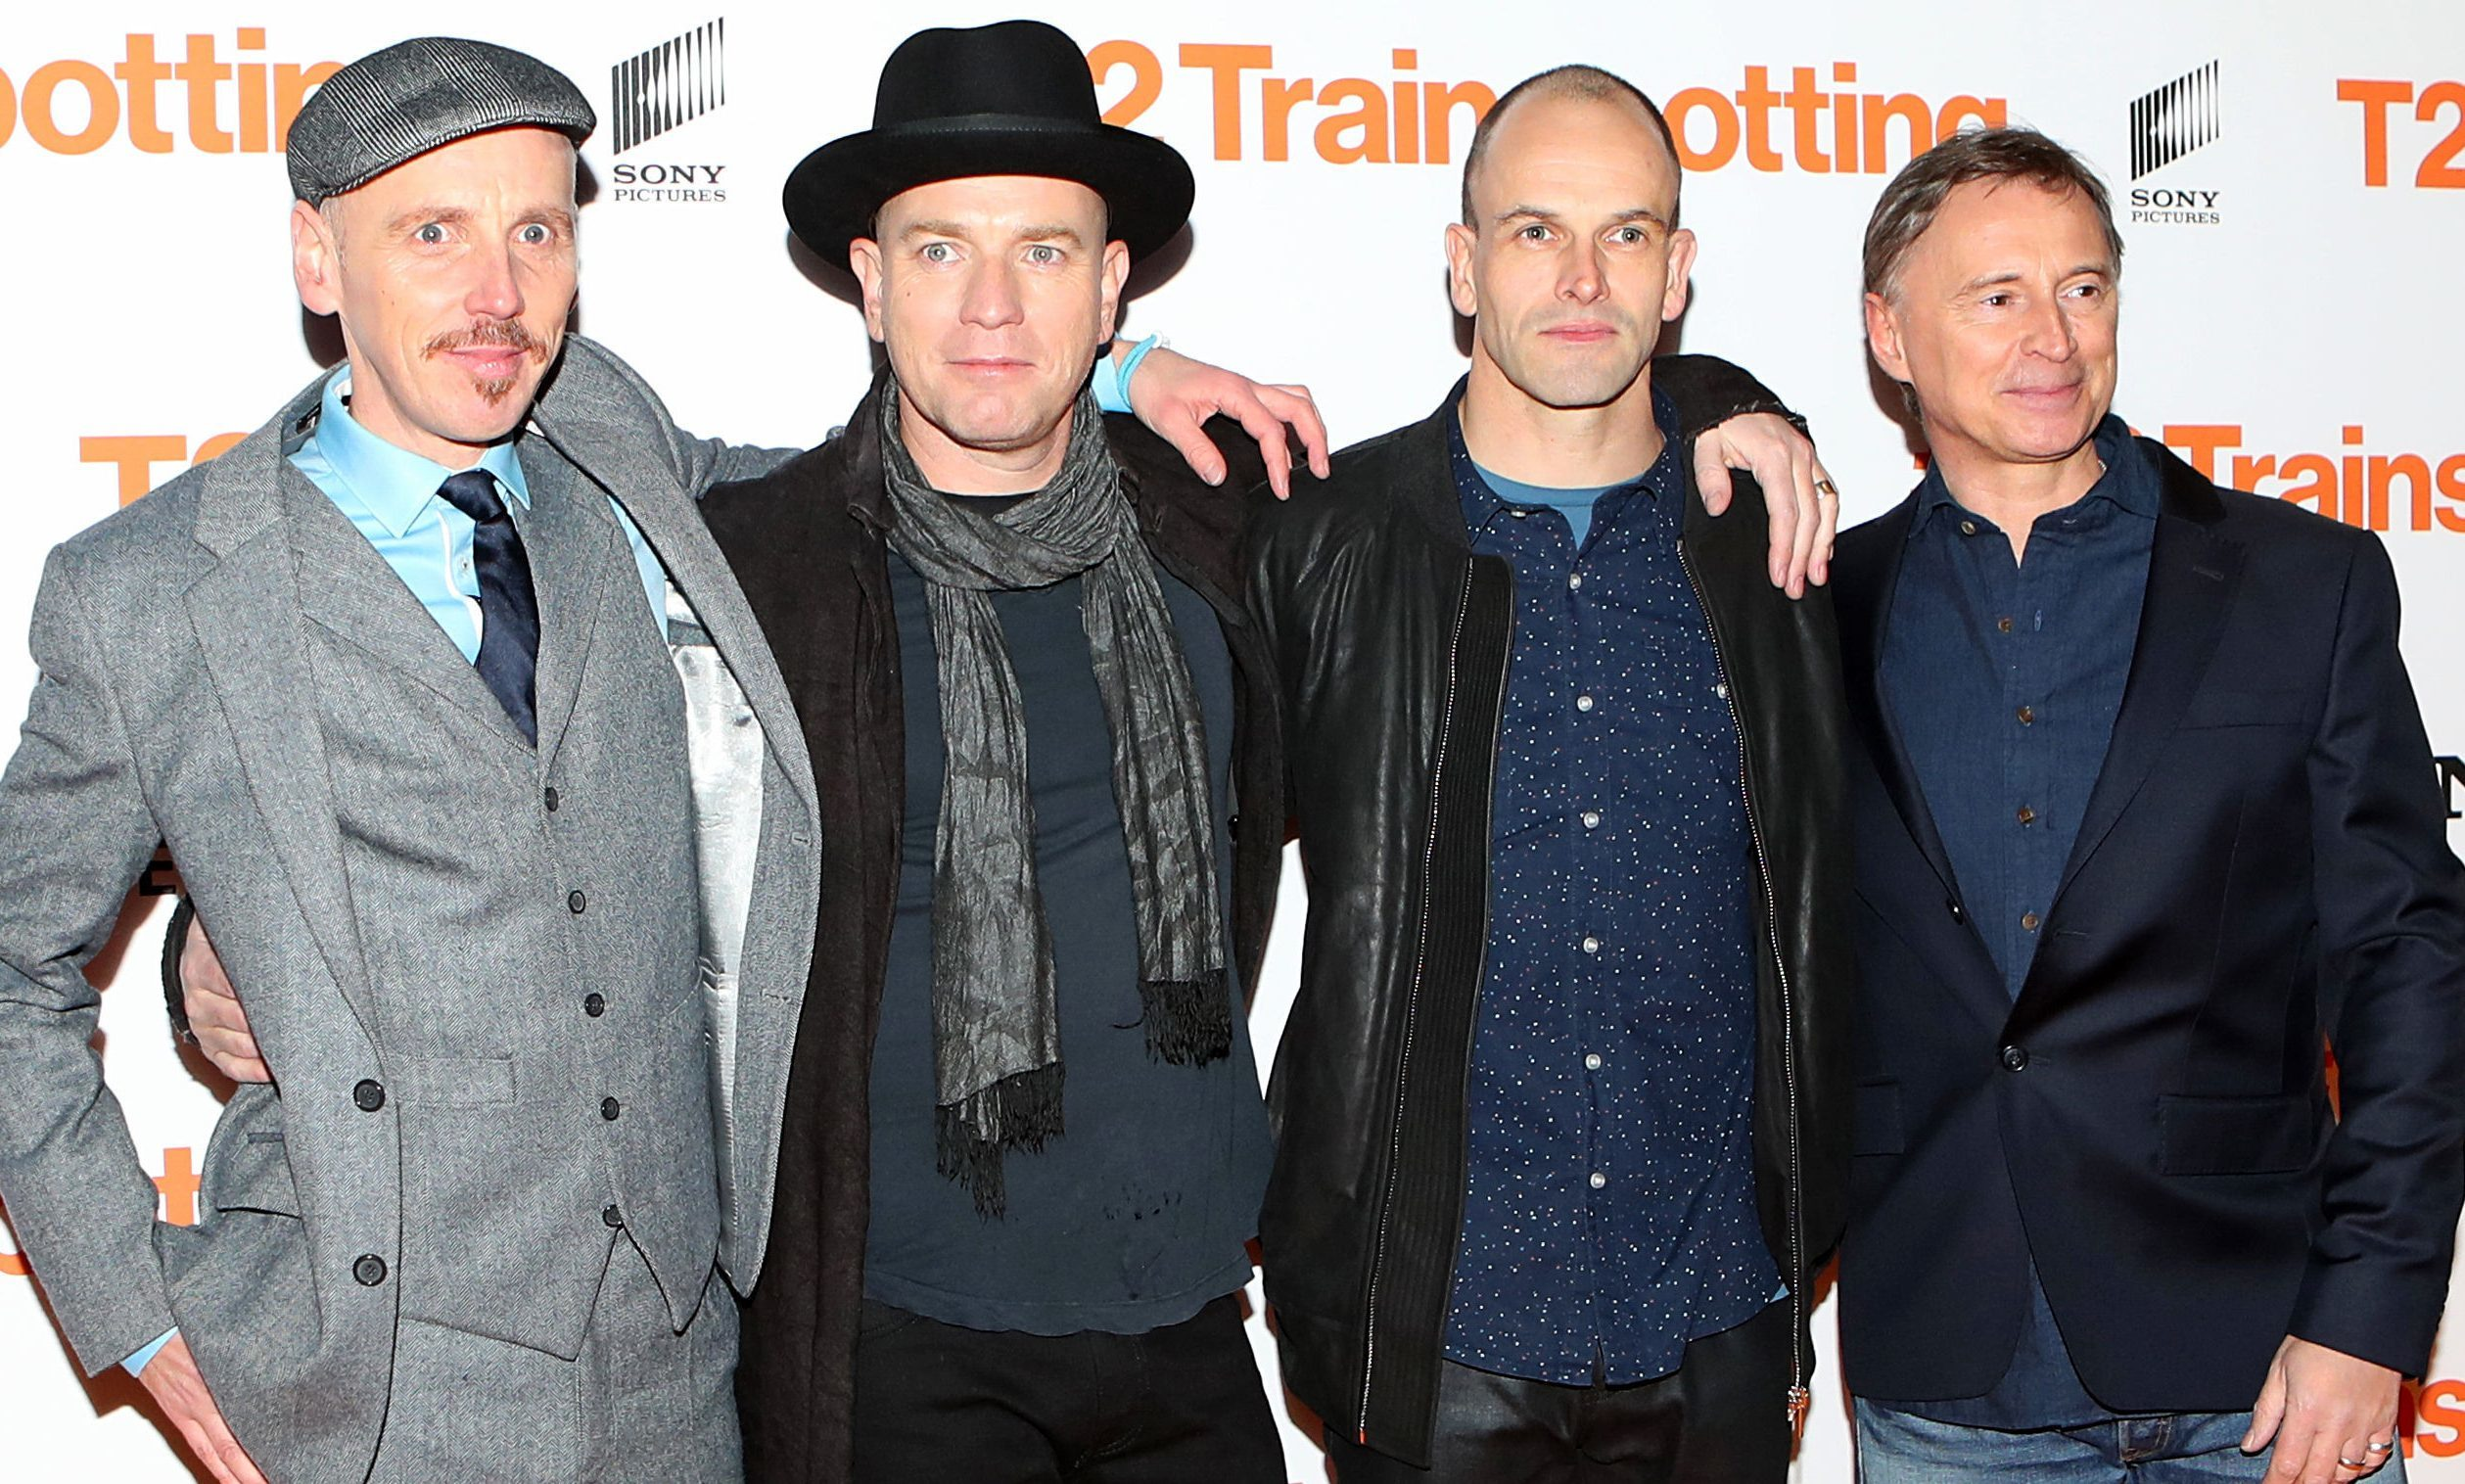 Ewen Bremner, Ewan McGregor, Jonny Lee Miller and Robert Carlyle at the world premiere of Trainspotting 2 at Cineworld in Edinburgh.